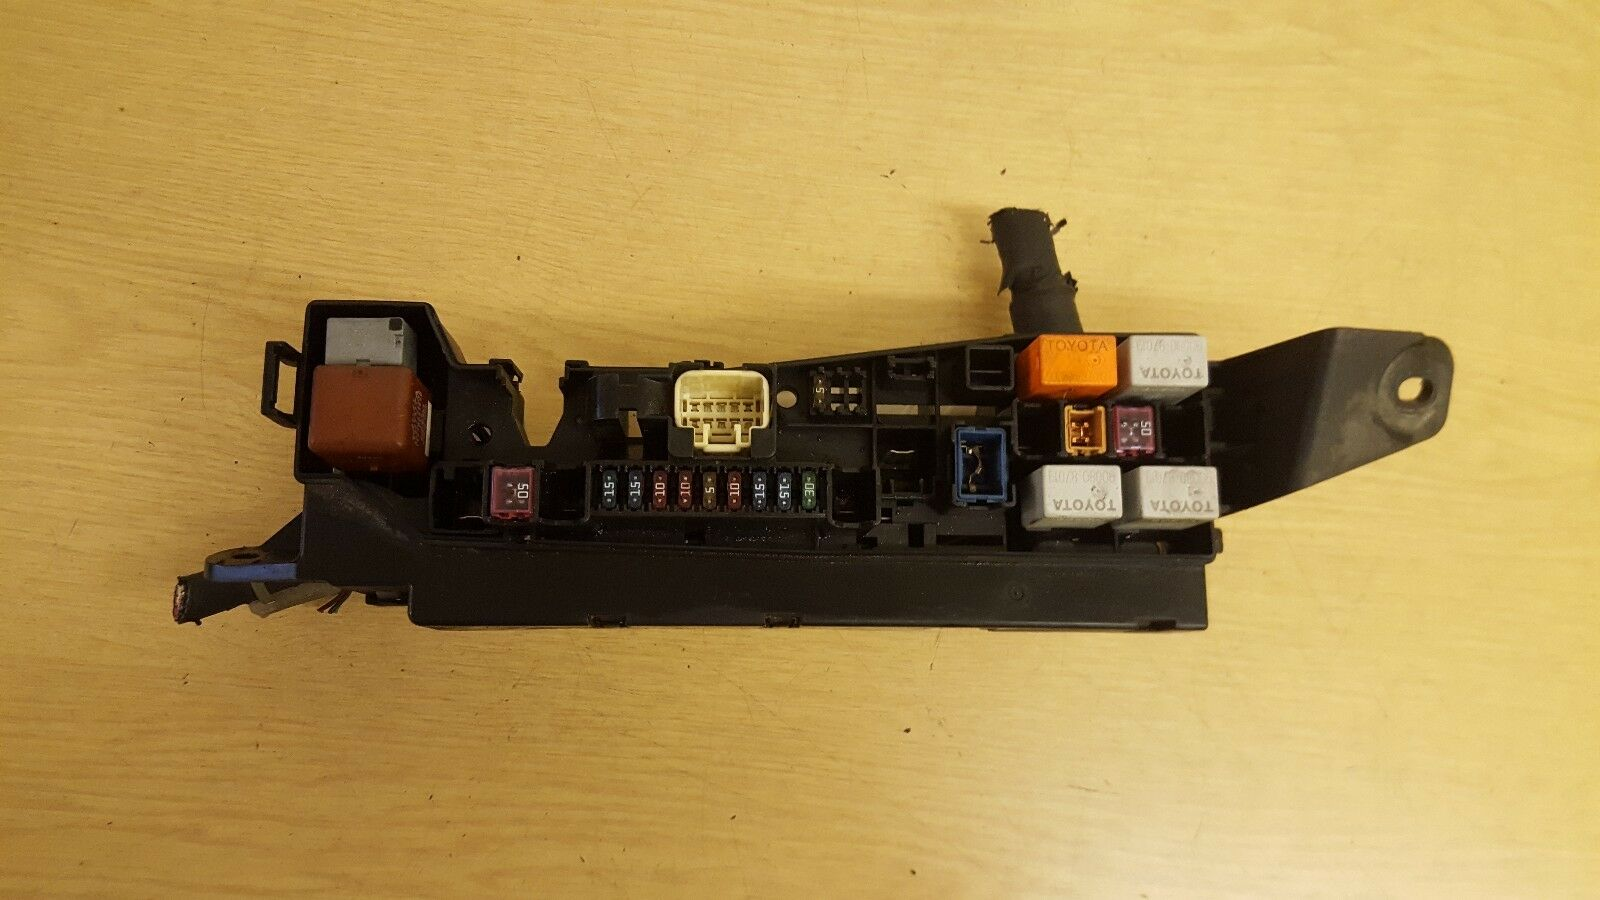 Toyota Corolla 14 Vvt I Fuse Box 1949 Picclick Uk 98 1 Of 1only Available